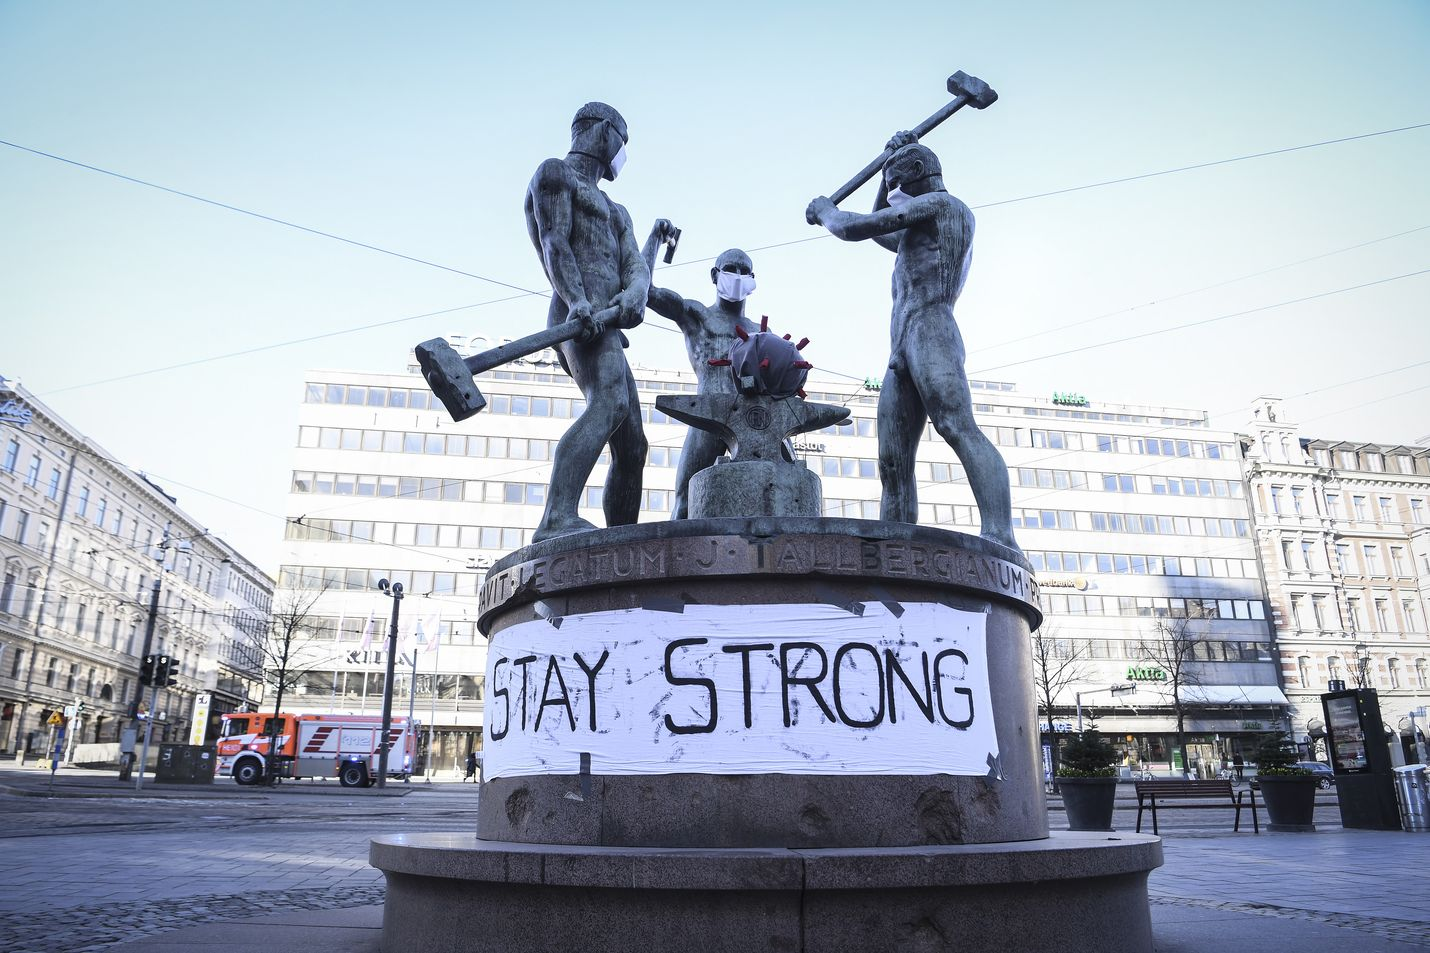 A banner at the Three Smiths Statue reads 'Stay Strong' in Helsinki, Finland, 31 March 2020. According to the Finnish Institute for Health and Welfare, THL, Finland has registered at least 1,615 COVID-19 cases, the disease caused by the novel coronavirus SARS-CoV-2.